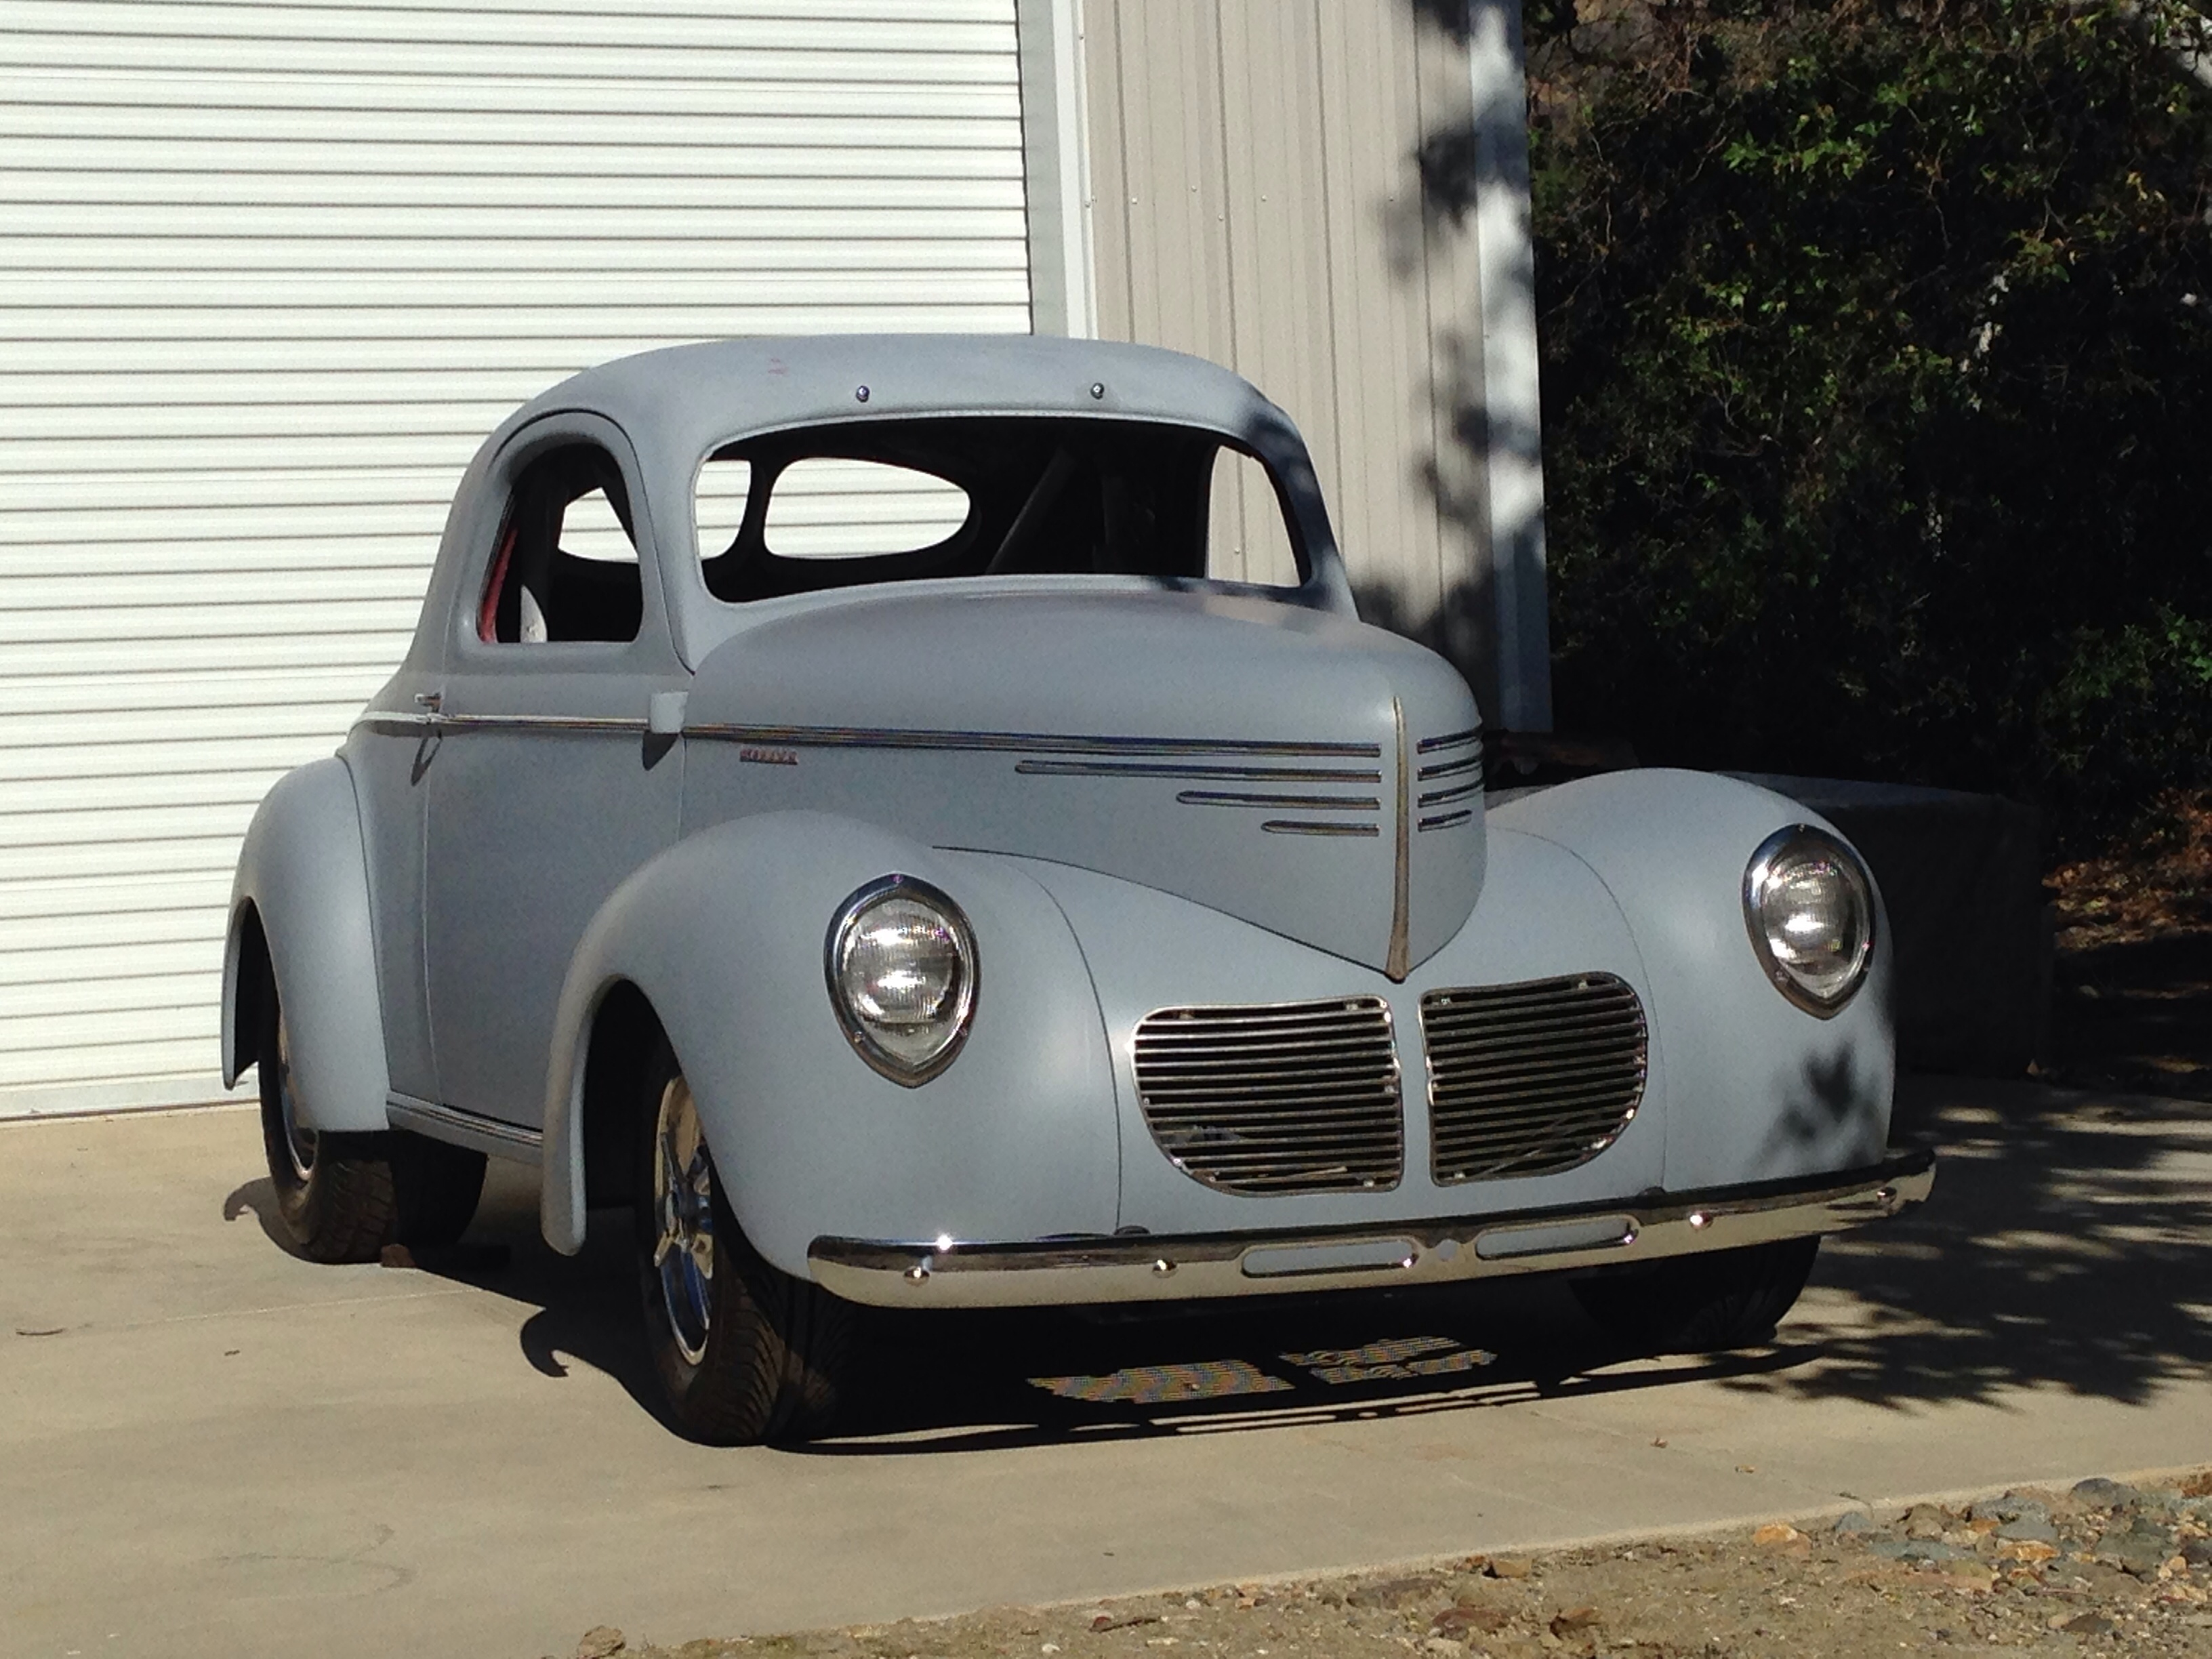 Willys moreover Ebay furthermore Dsc besides Ebay moreover . on 1940 willys coupe sale